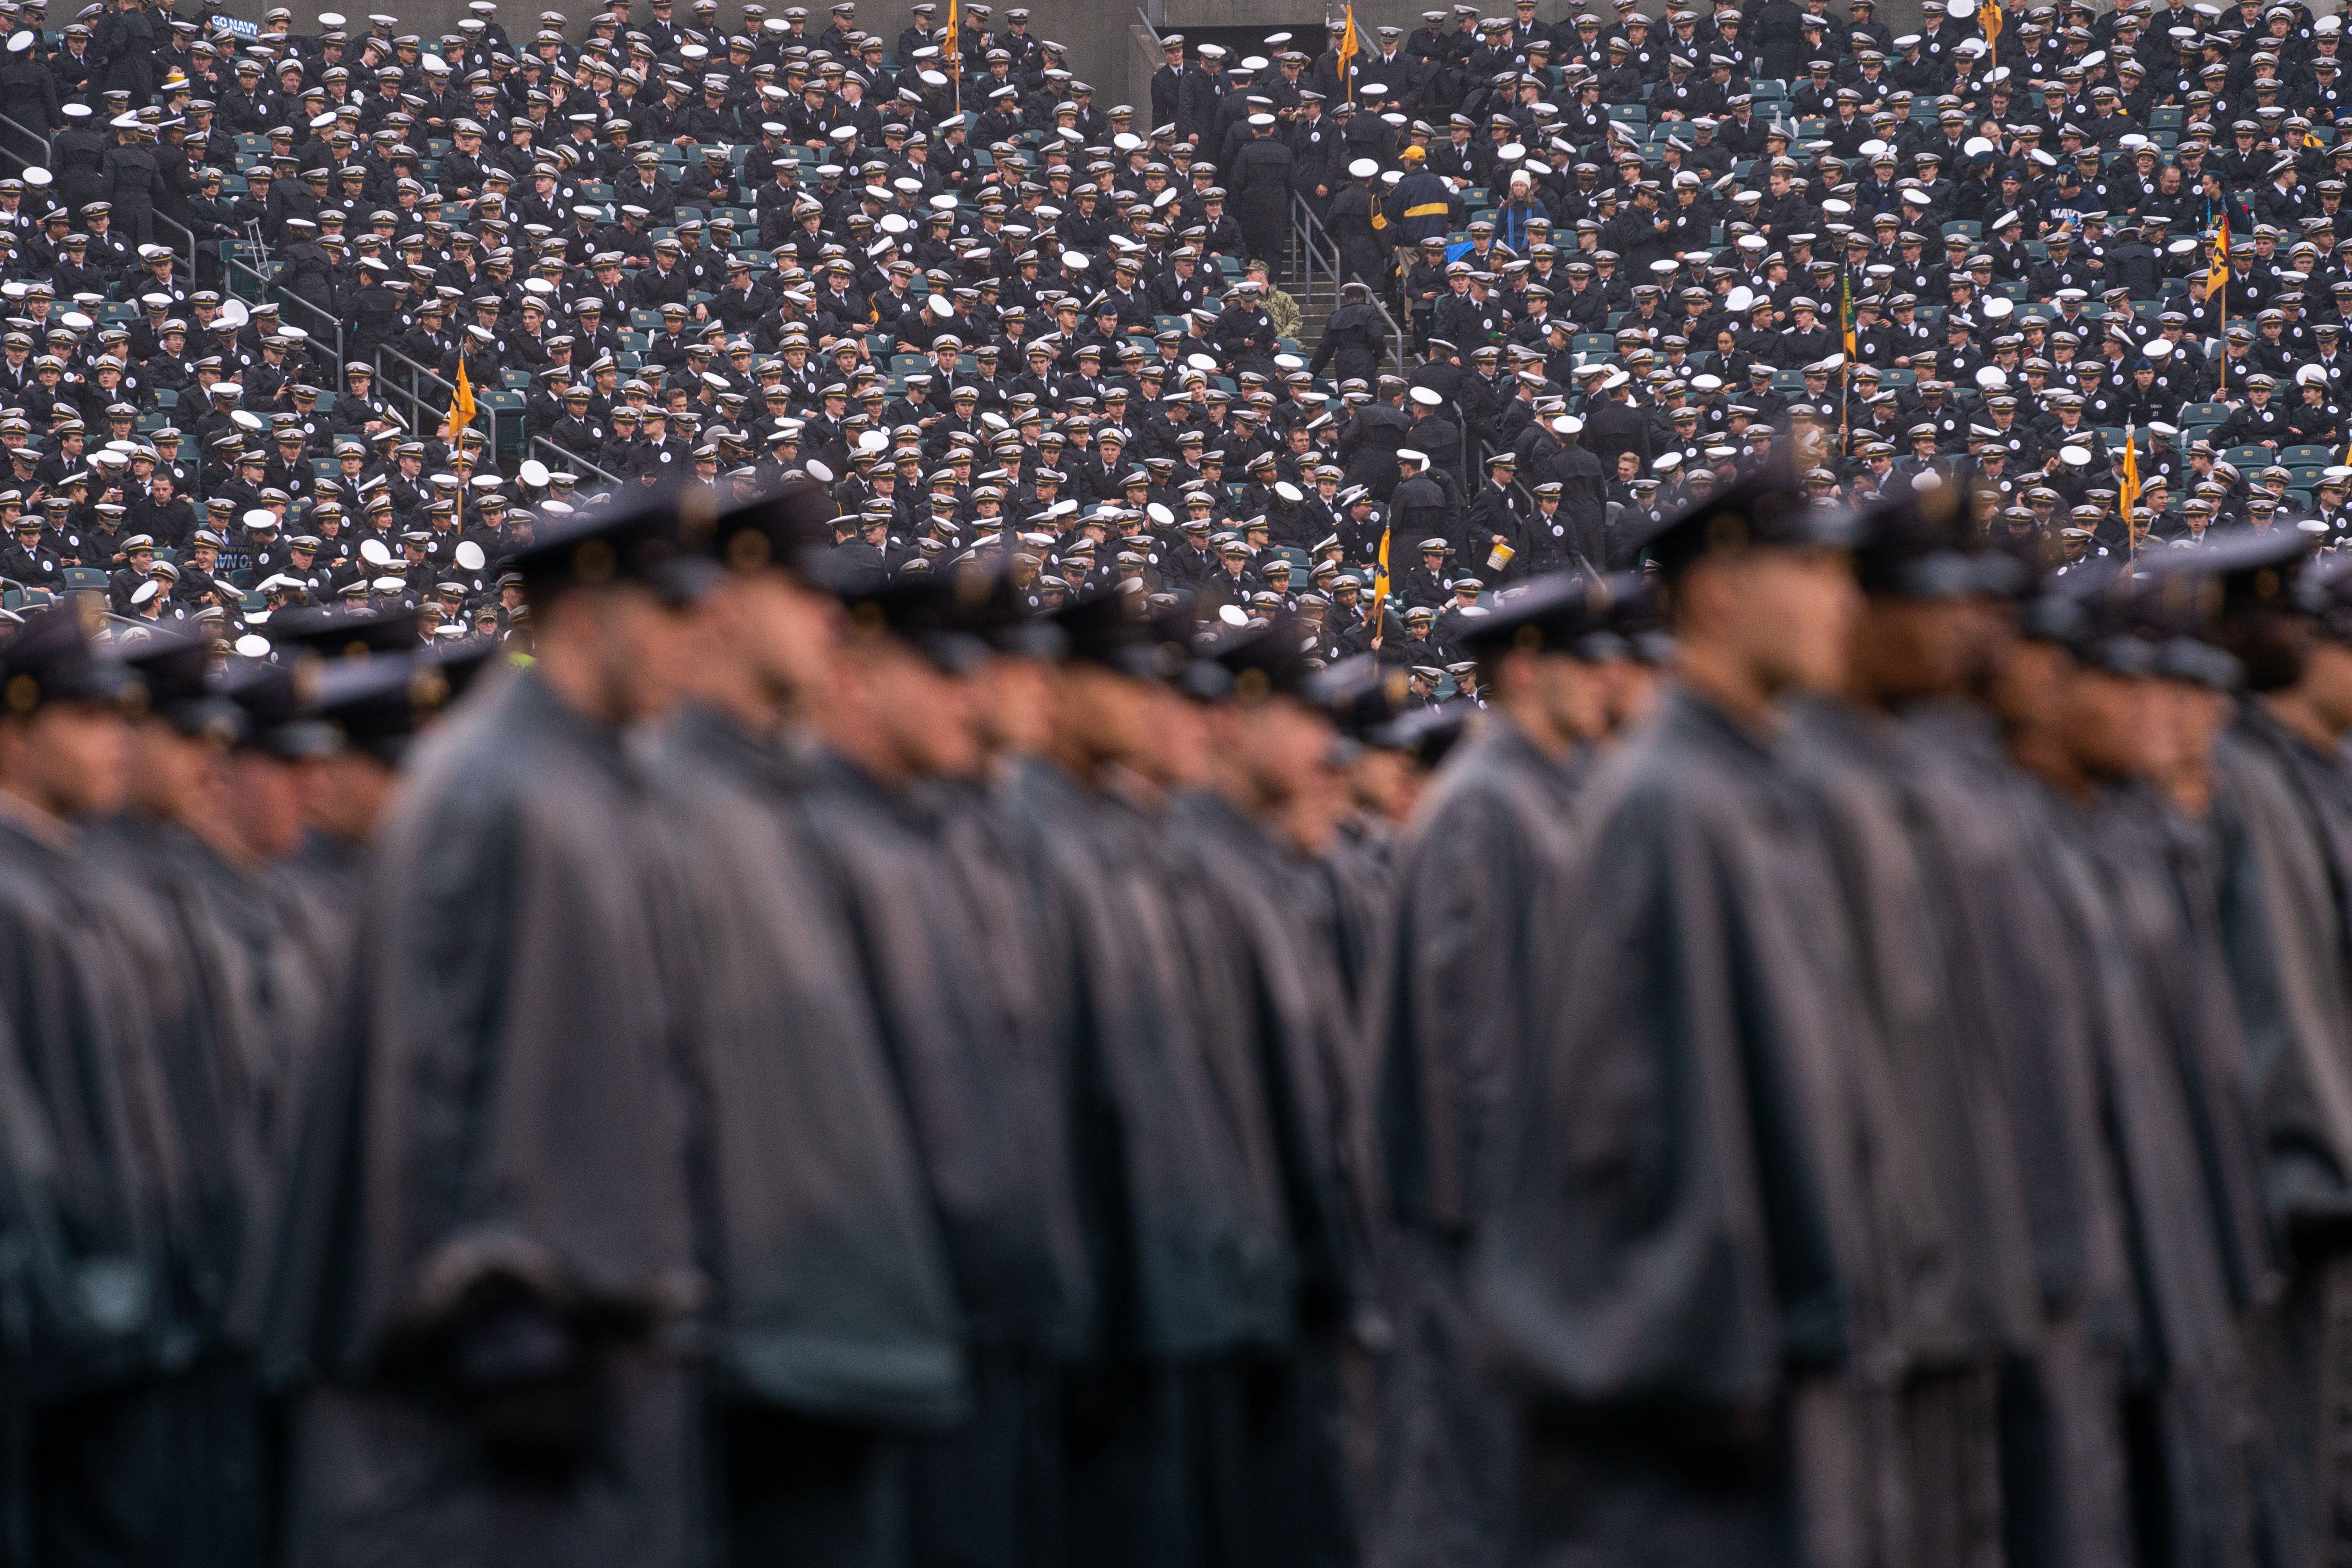 Due to attendance limits, Army-Navy game moved from Philadelphia to West Point